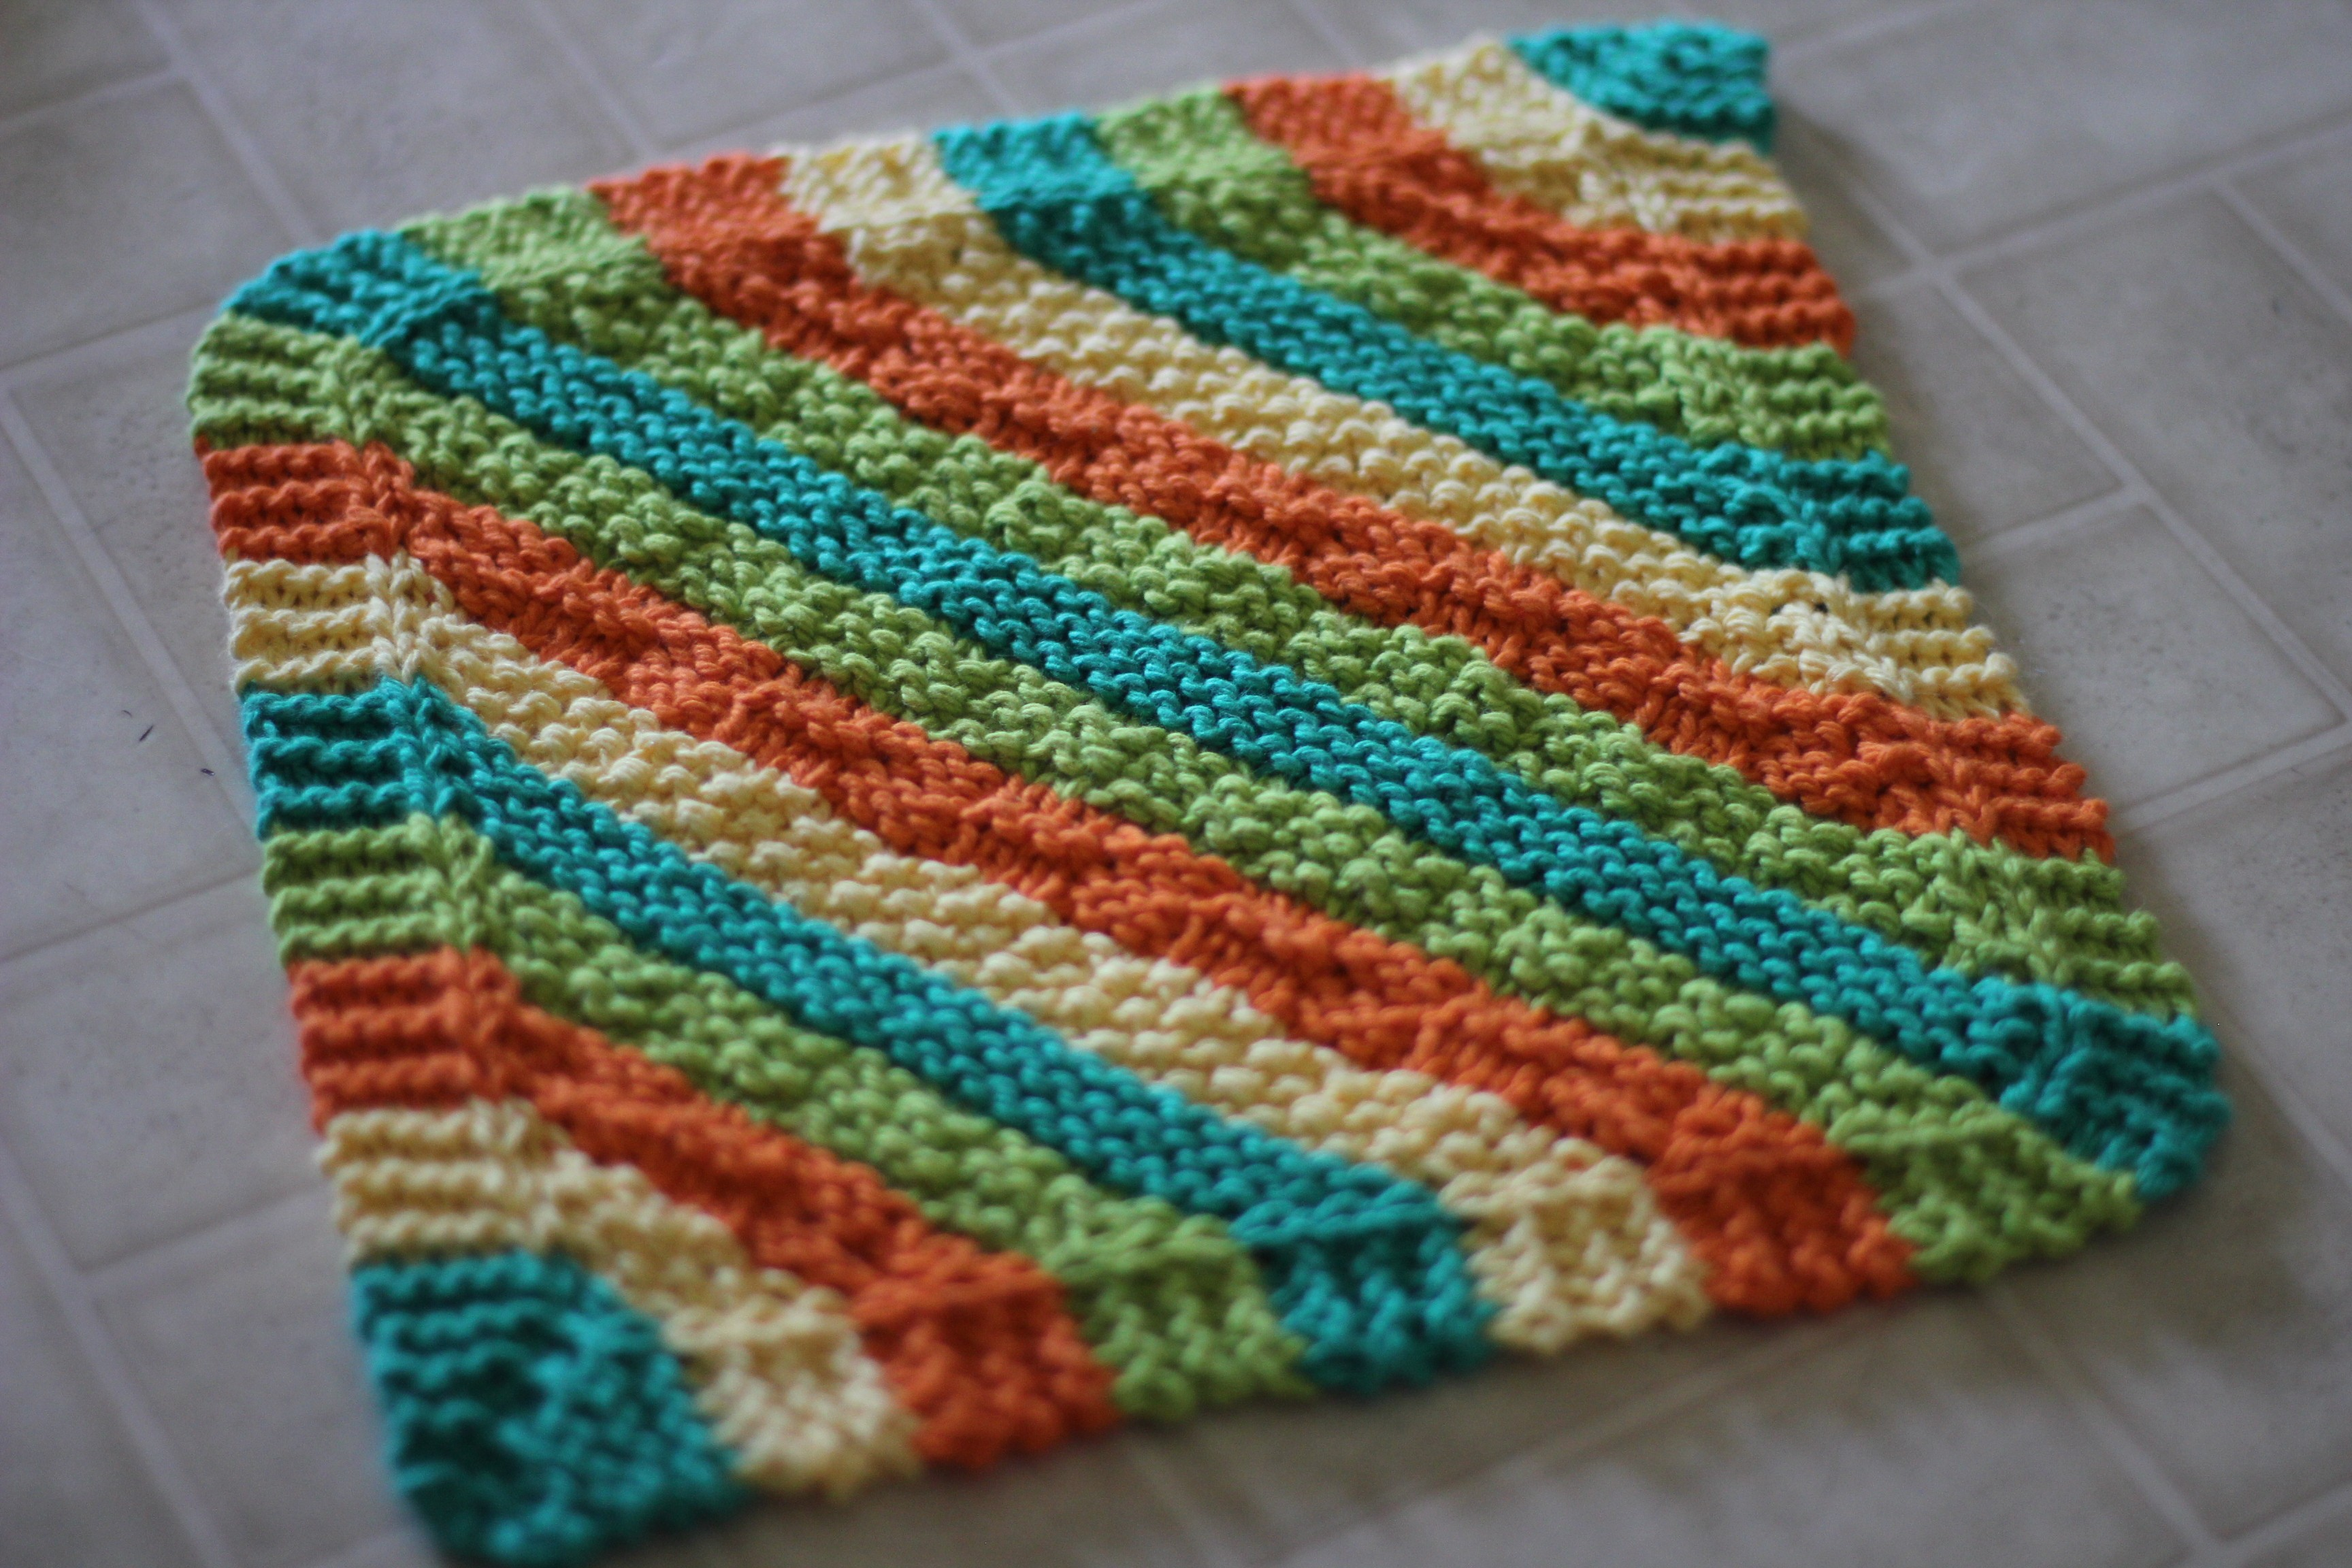 Knitting Dishcloths Easy : Chauffage climatisation dishcloth knitting pattern easy